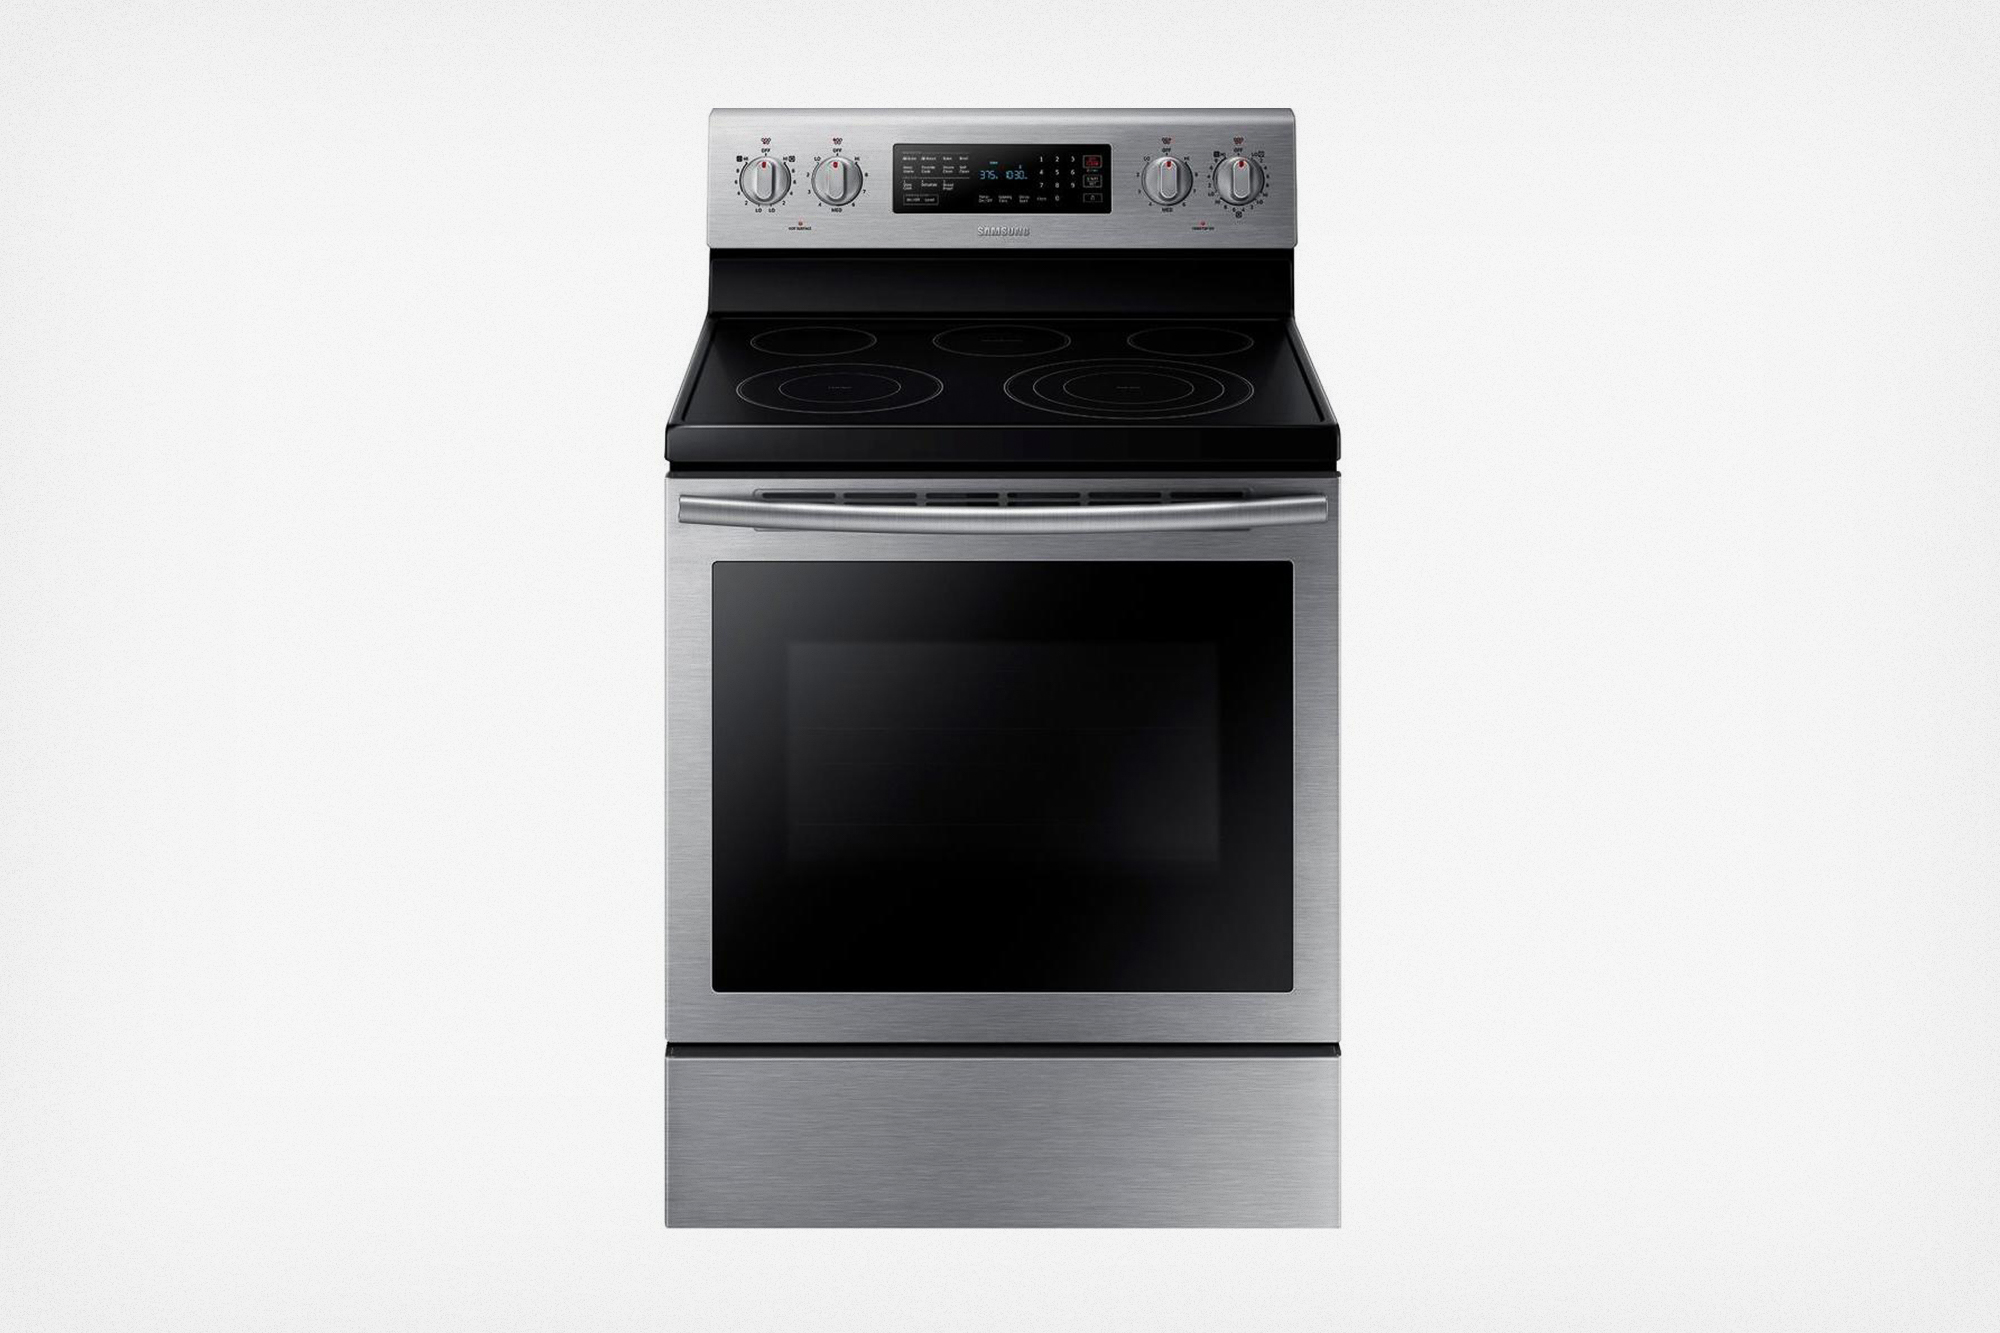 The Samsung Ne59j7630ss Is Best Freestanding Radiant Electric Range For Most People Because It Has All Of Important Cooking And Cleaning Features